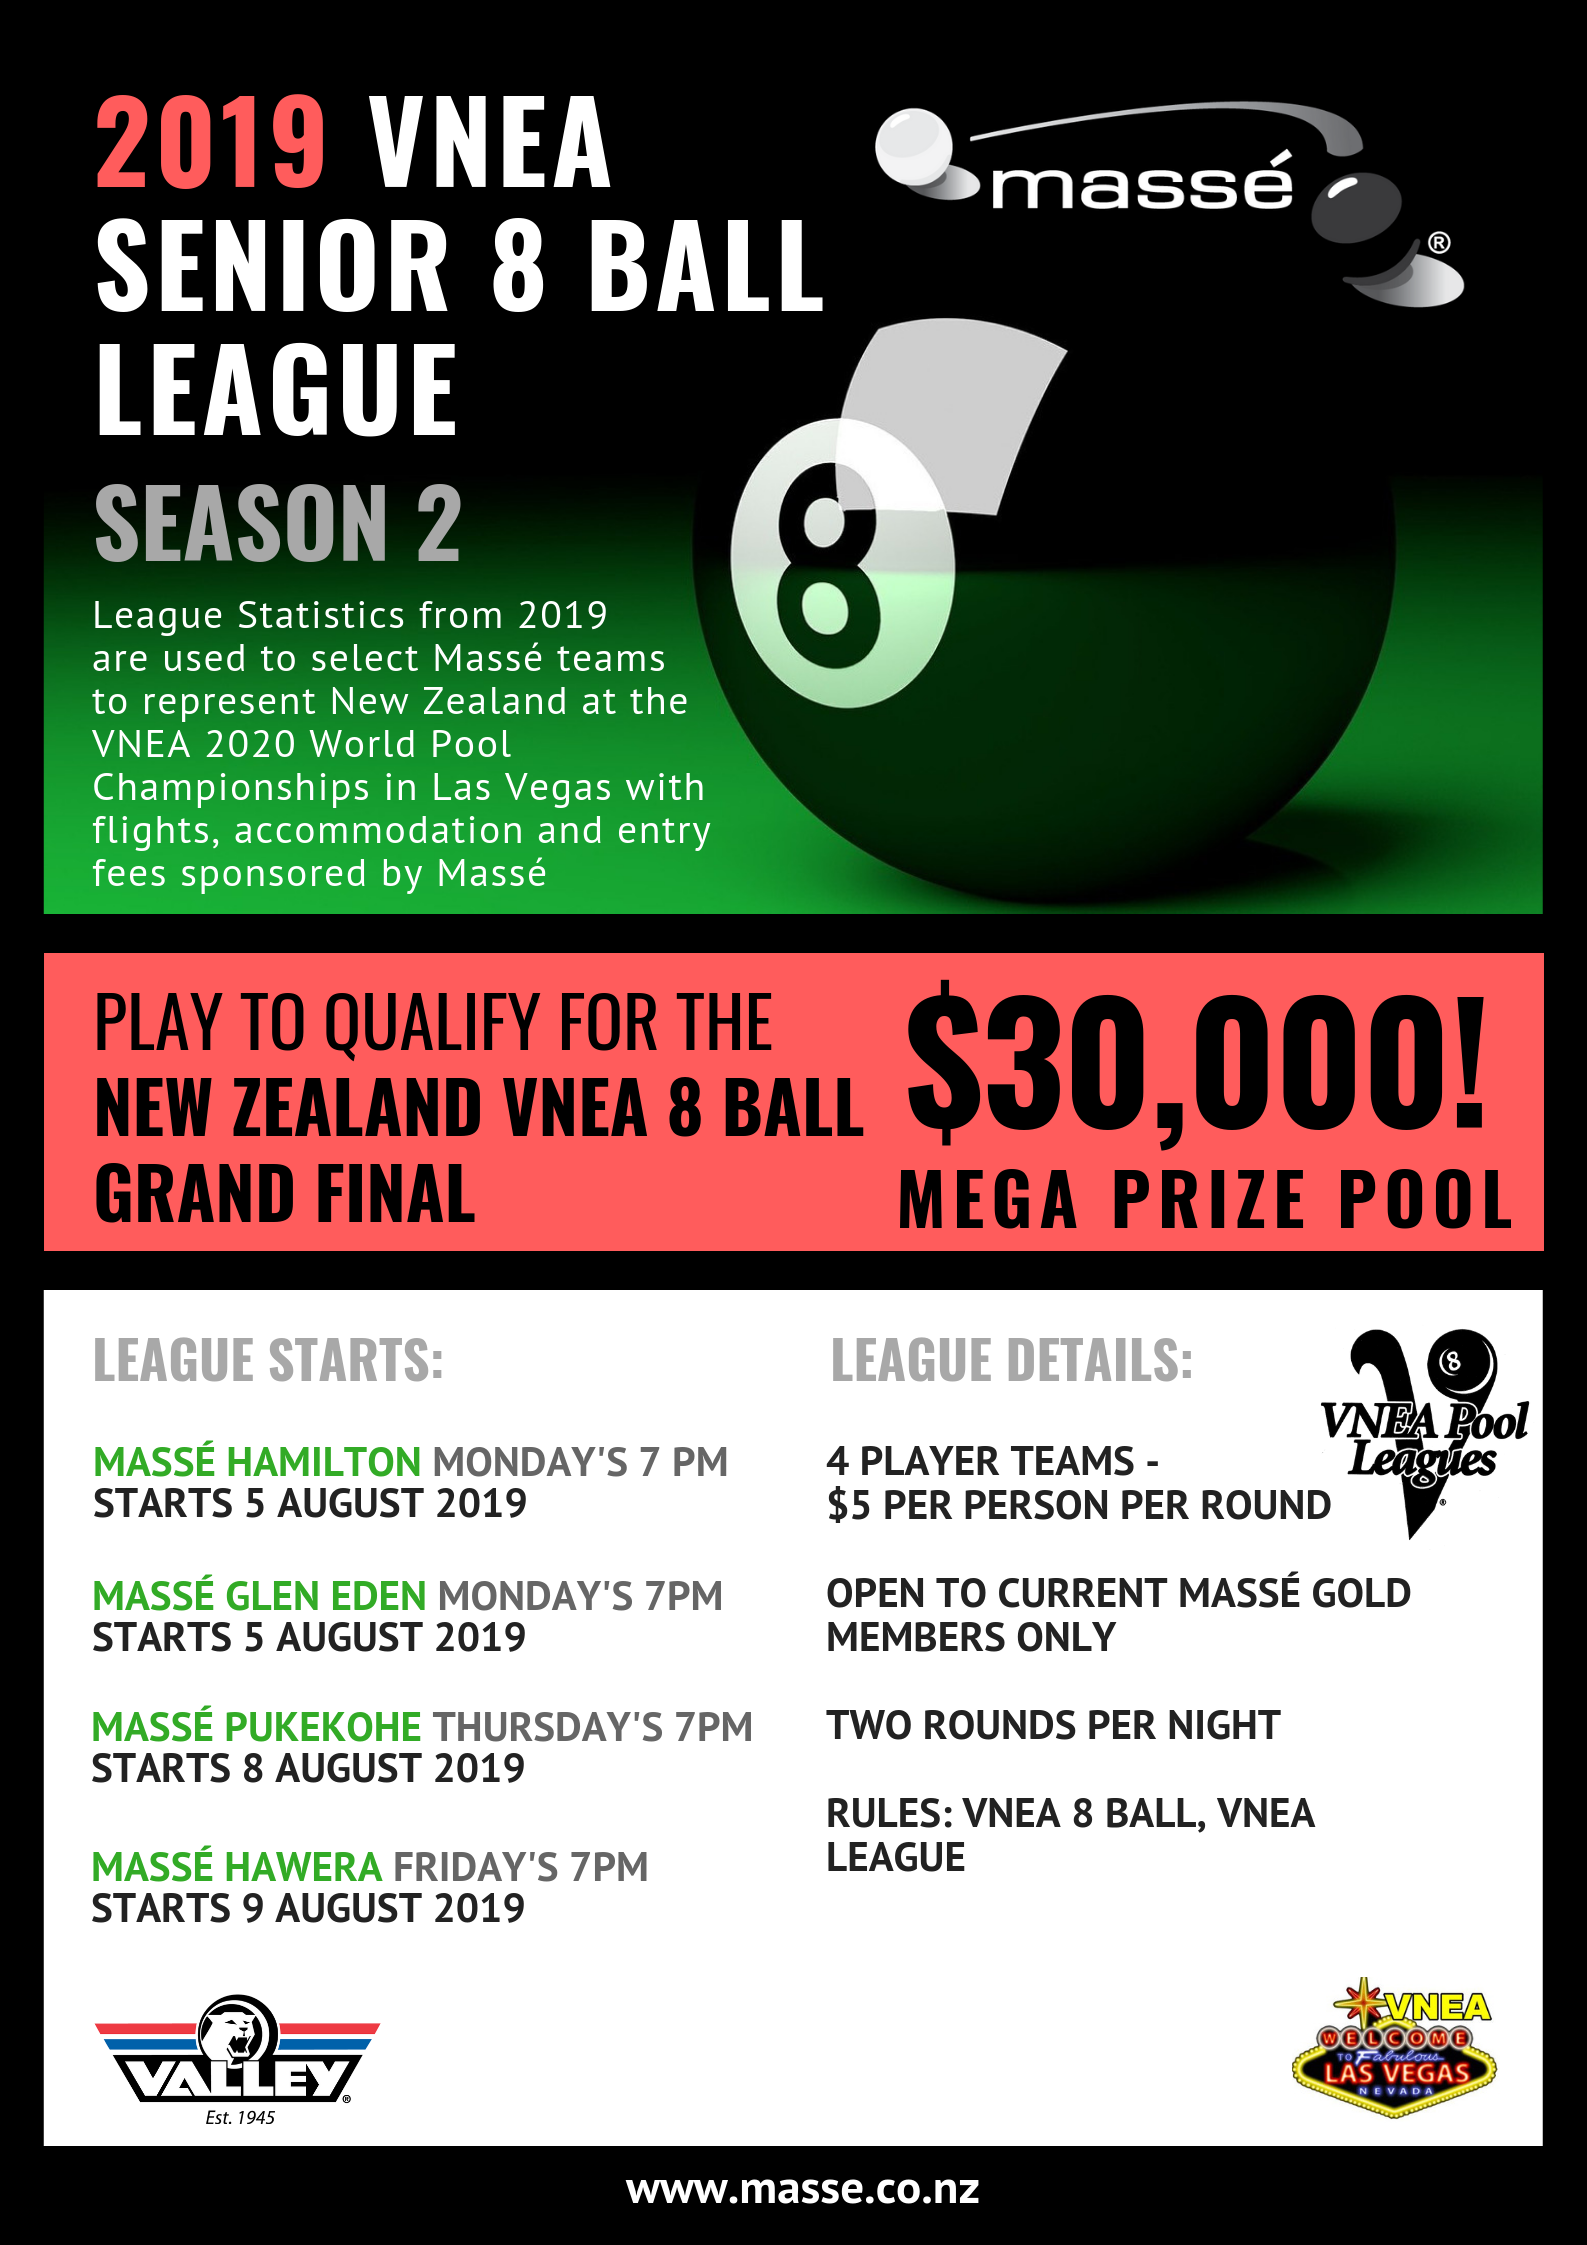 Masse - New Zealand's Premier Cuesports Club for 8 Ball, 9